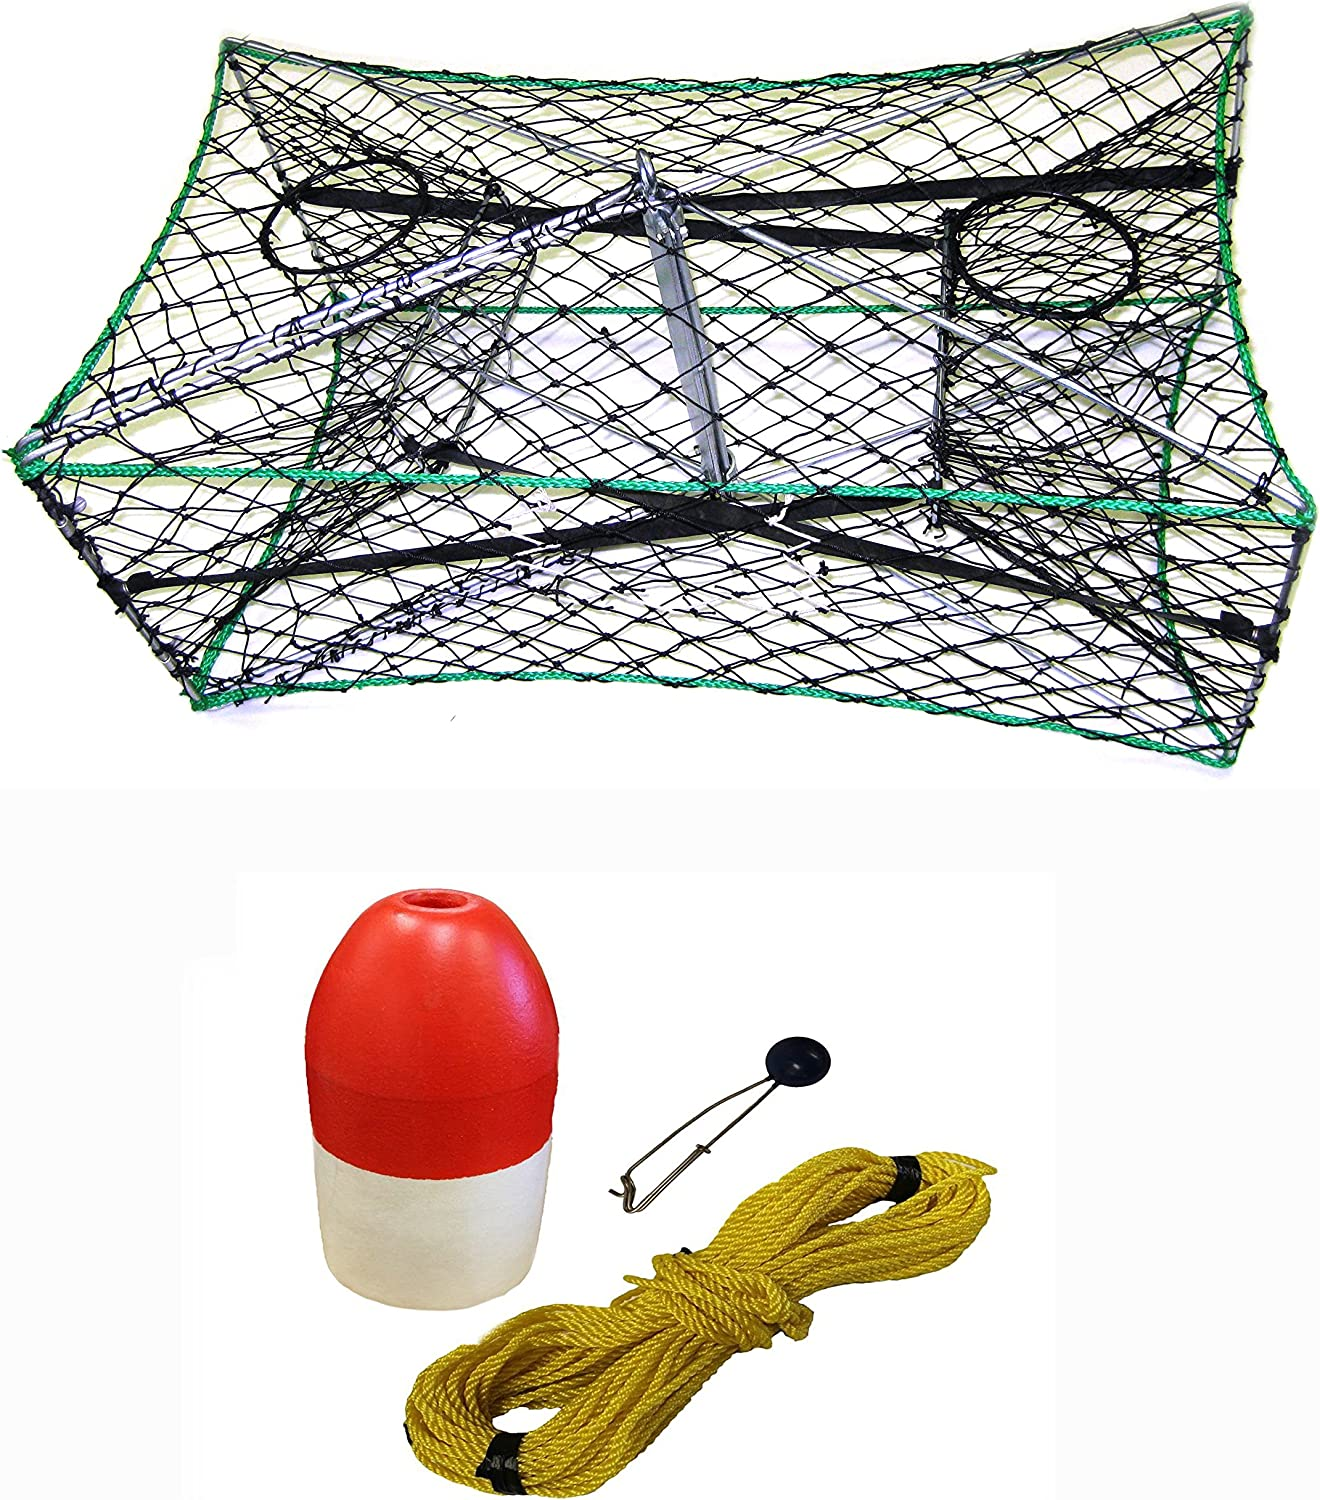 KUFA Galvanized Foldable Crab Trap 1 4  X 100' Poly Rope with Clip On Line